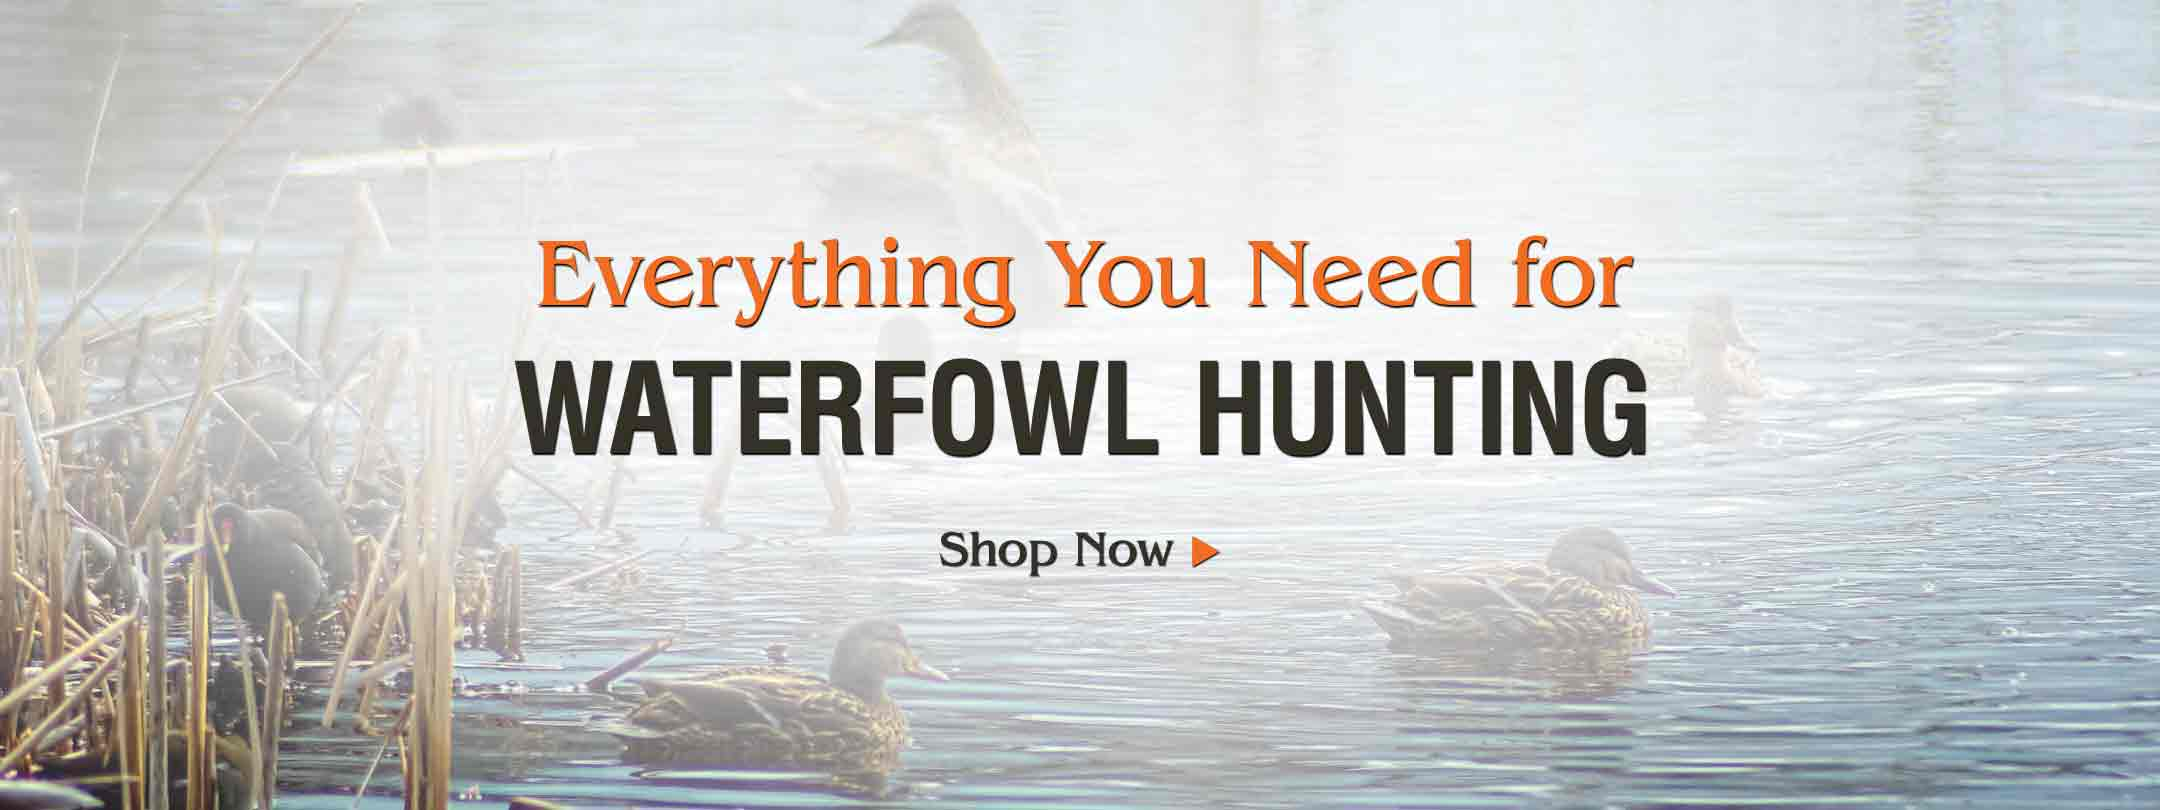 Save on Waterfowl Hunting Clothing, Boat Motors, Gun Cases & More!